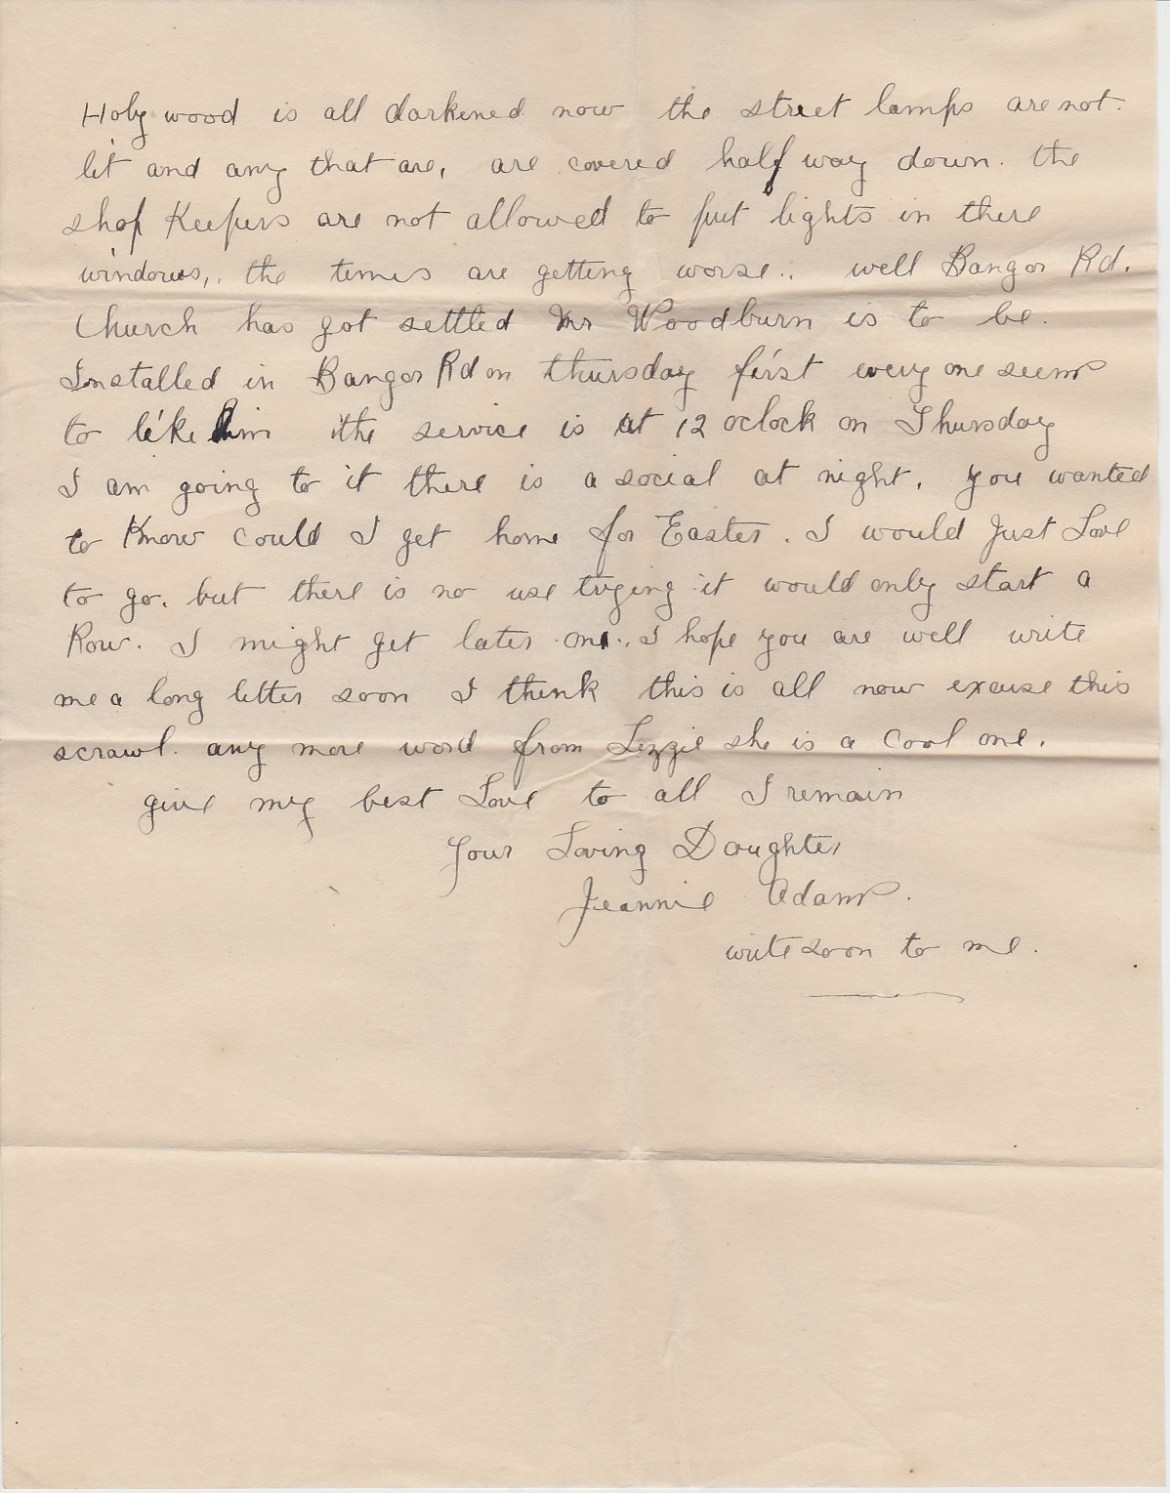 16 04 16 Church Hill Jeannie letter 02